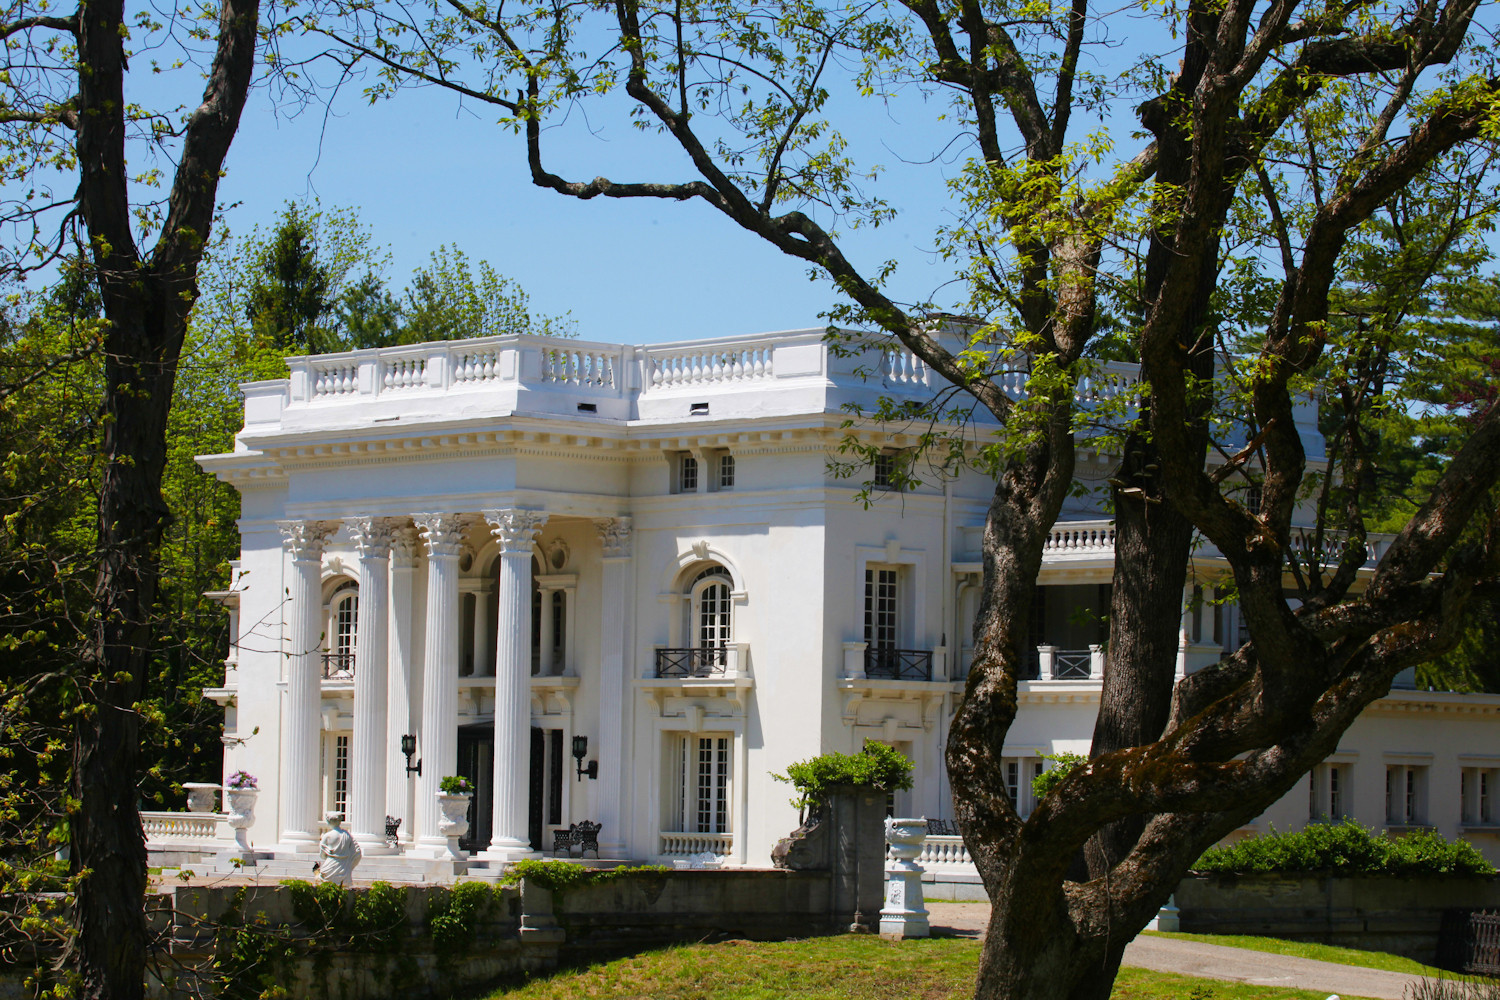 of sharon connecticut mansion sets record this year for of sharon connecticut mansion sets record this year for litchfield county hartford courant